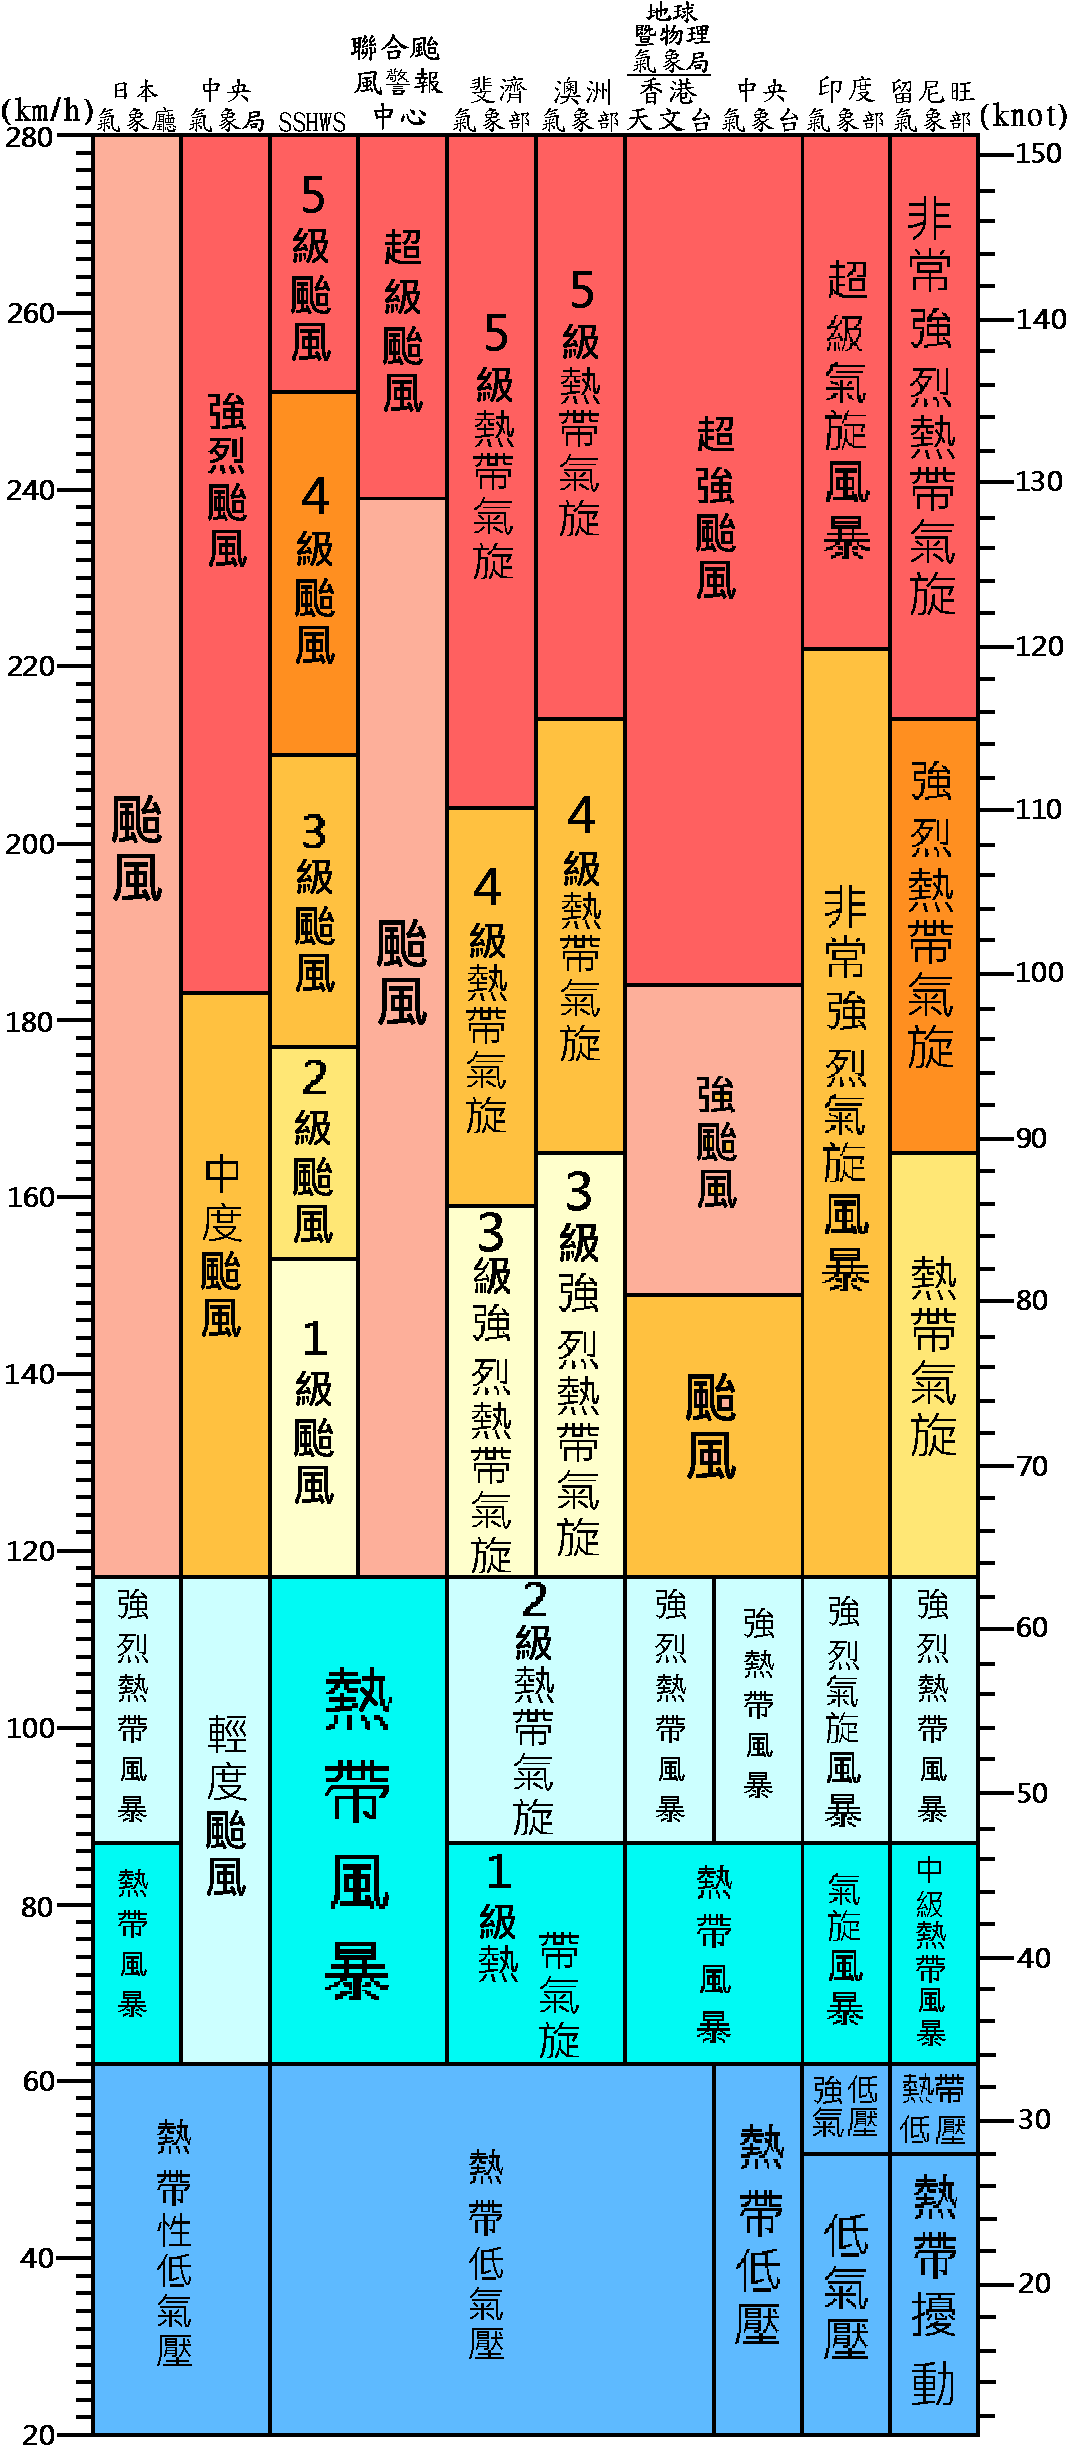 Typhoon scale.png